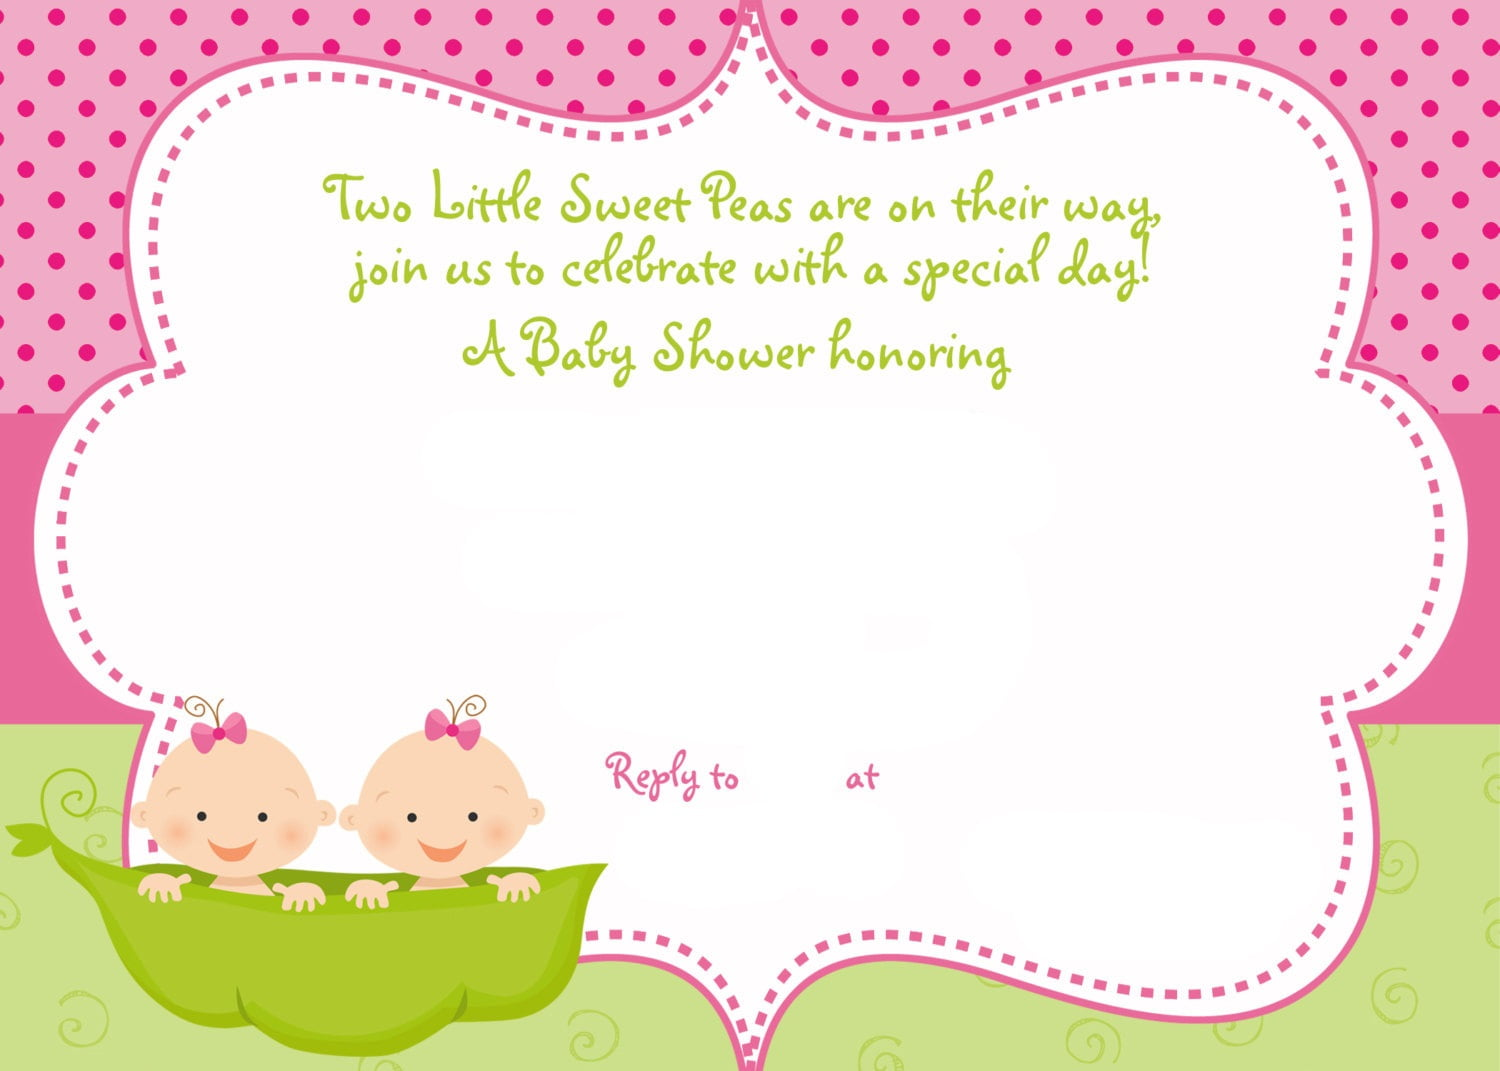 Twins Baby Shower Ideas | FREE Printable Baby Shower Invitations ...